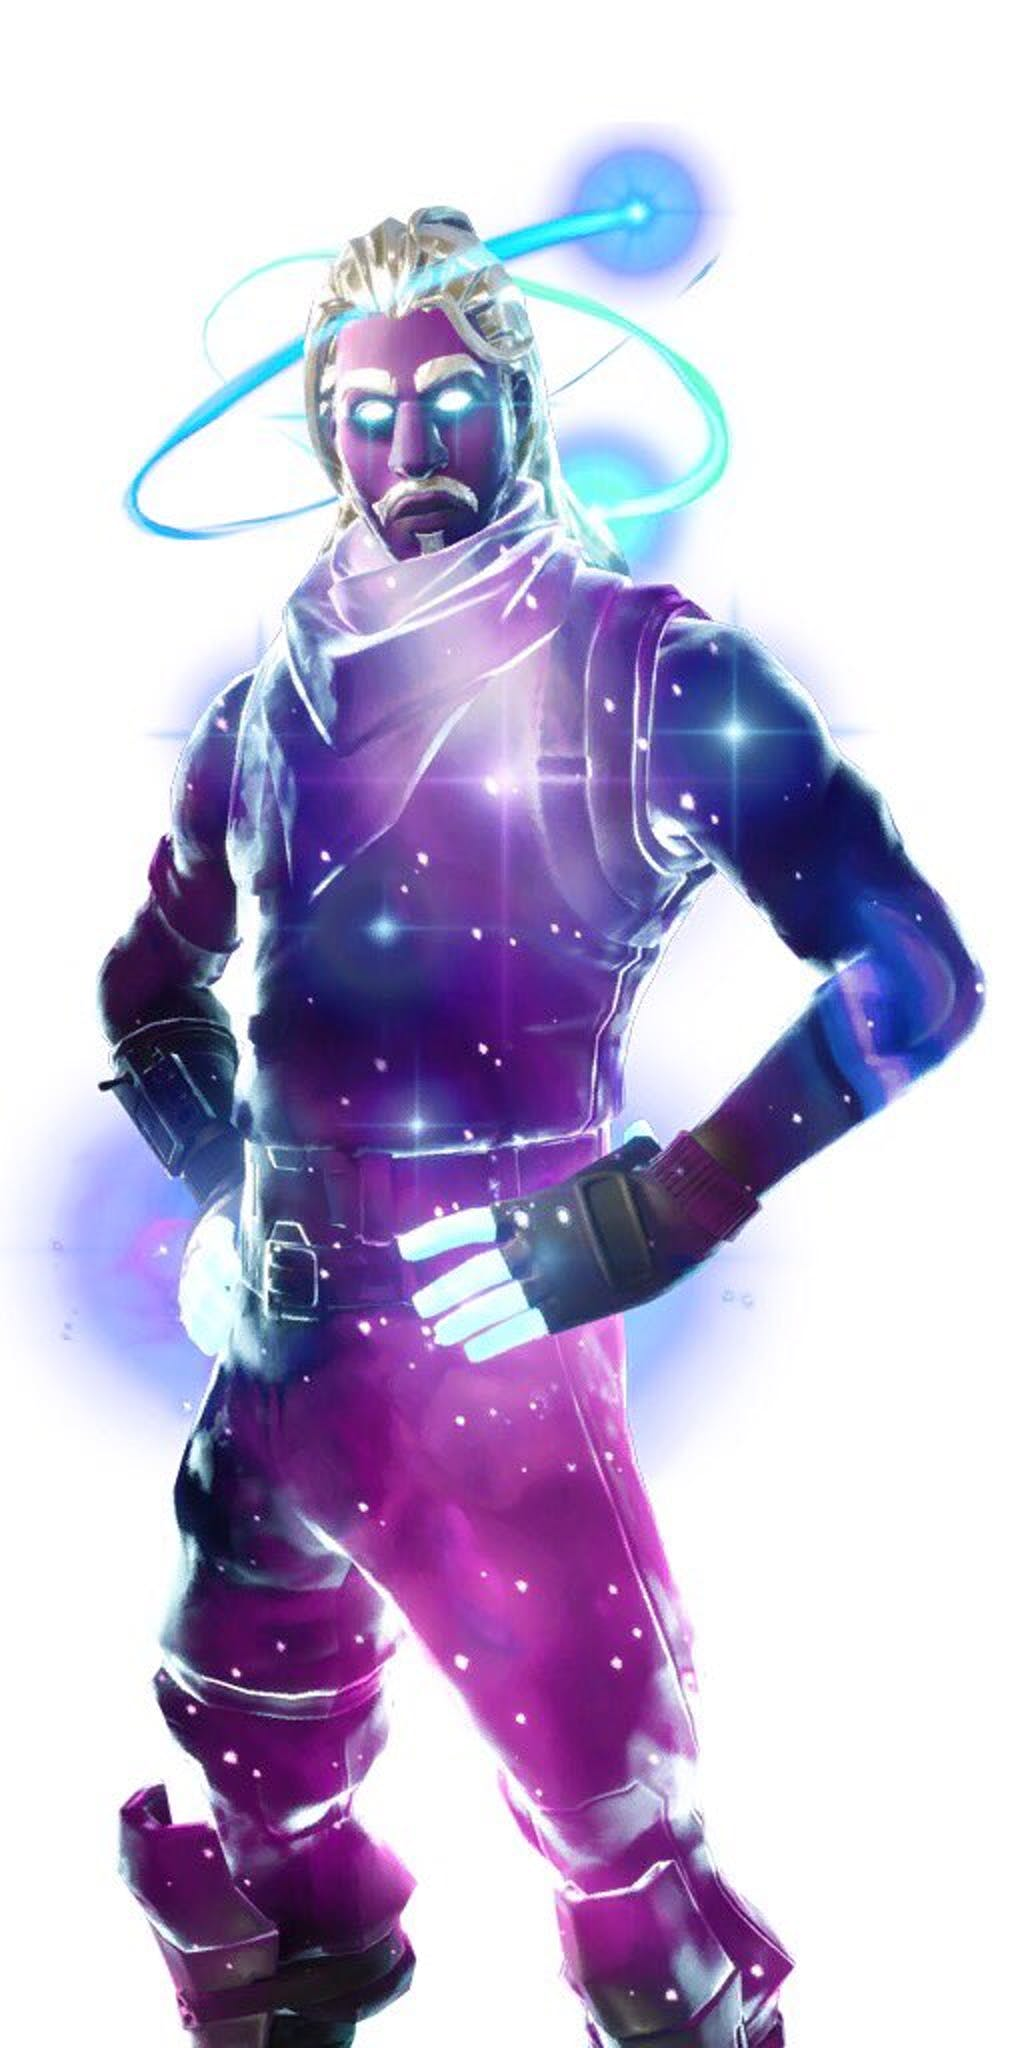 'Fortnite' Galaxy Skin